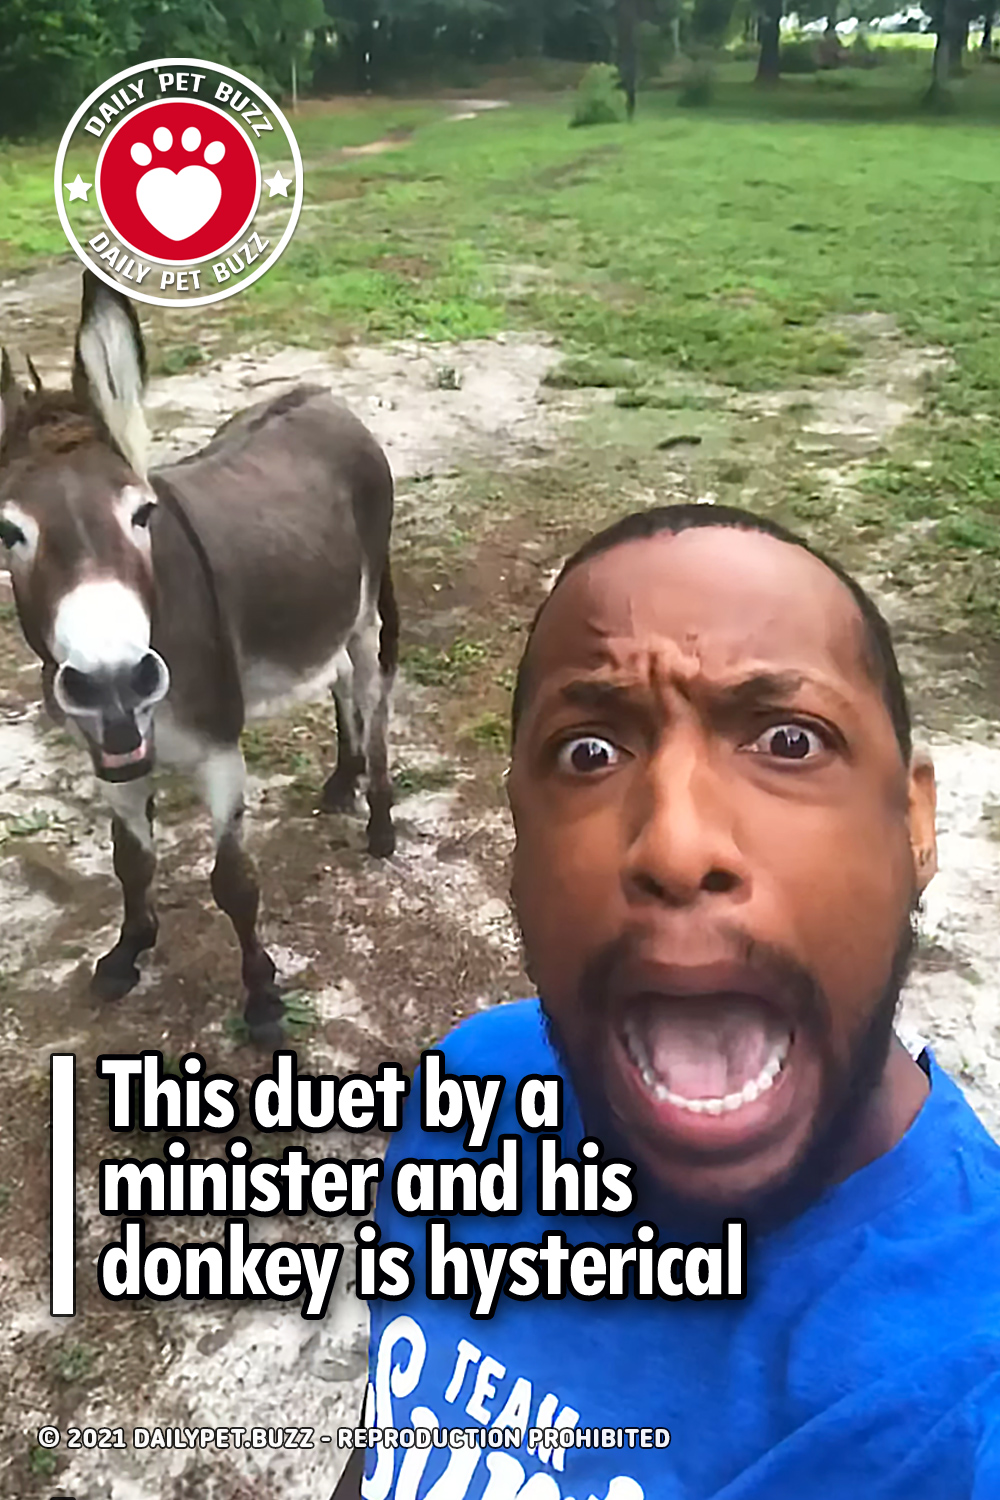 This duet by a minister and his donkey is hysterical